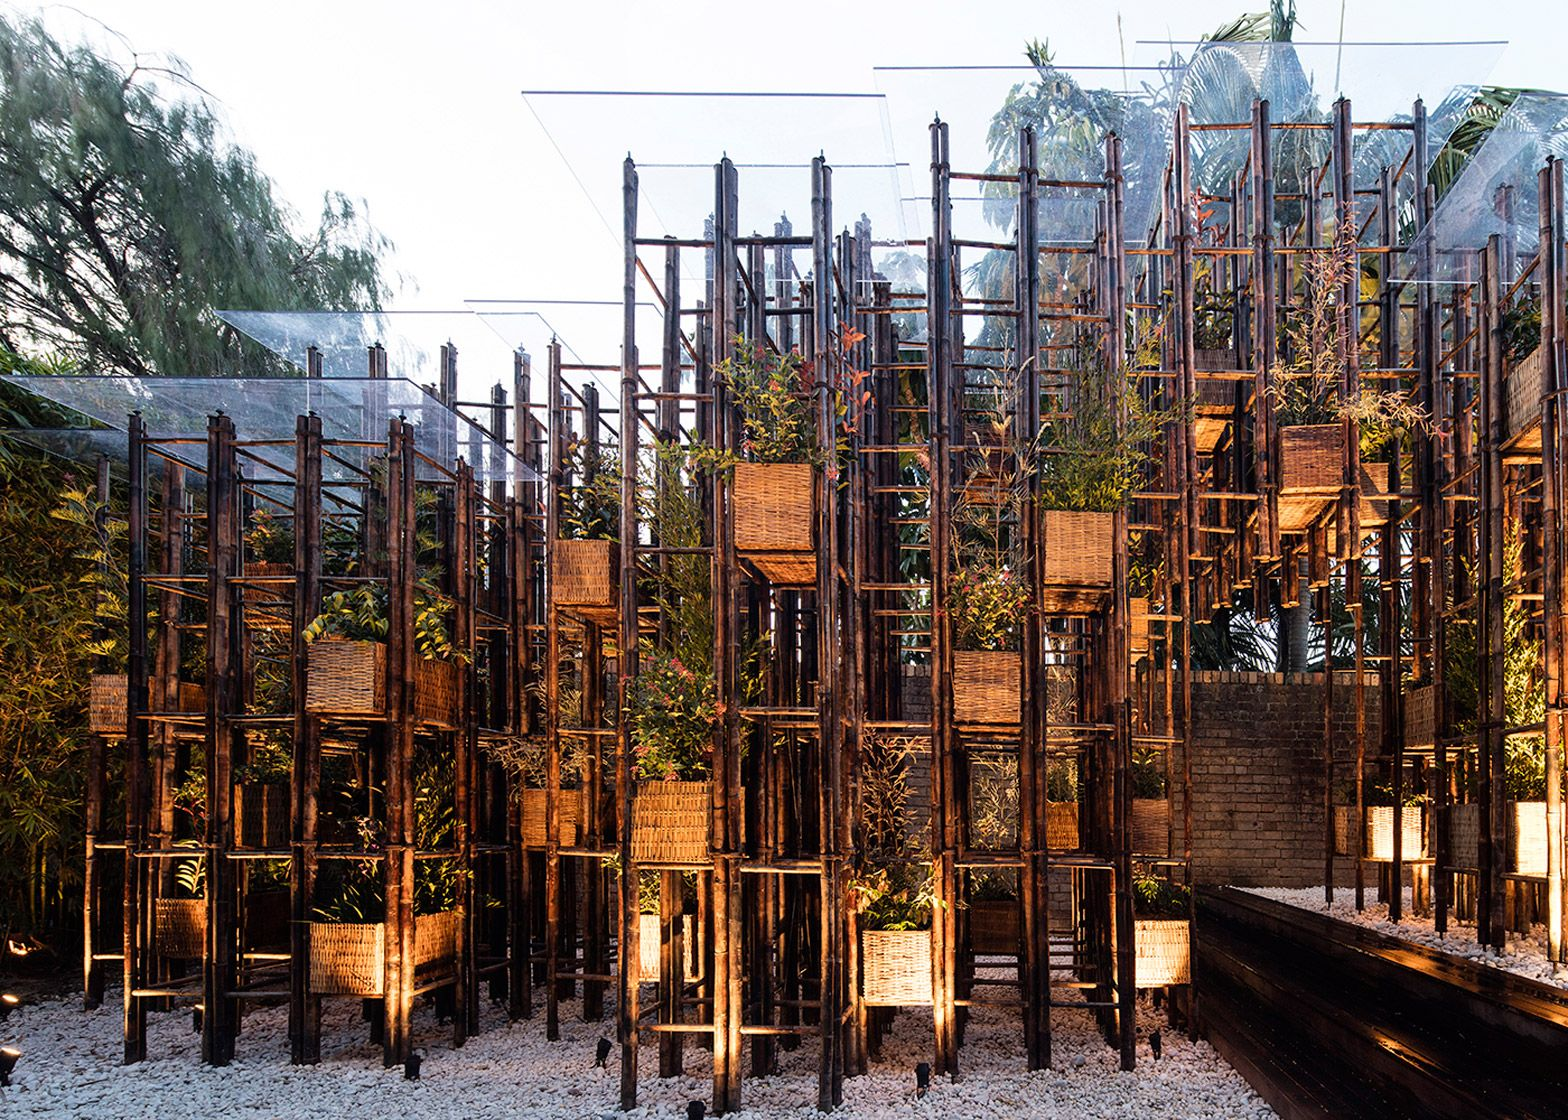 vo trong nghia to build bamboo pavilion for fugitive